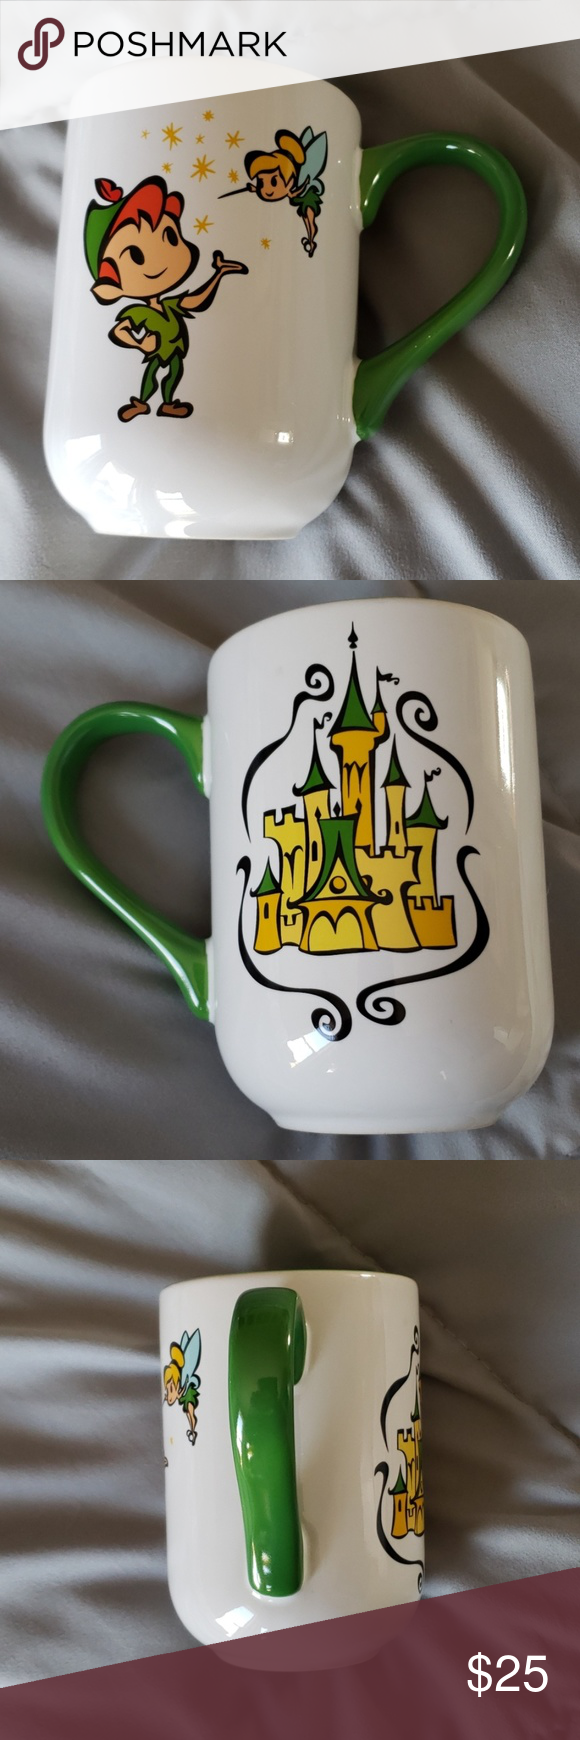 Tinkerbell & Peter Pan & Castle Mug Disney Parks Cup. No chips. There is a slight black mark which may be from the manufacturing process, see last picture. Please see the pictures for measurements and condition. Please contact me with any questions. Thank you for looking. Pet friendly home.  There is light reflection in the pictures. Disney Kitchen Coffee & Tea Accessories #disneykitchen Tinkerbell & Peter Pan & Castle Mug Disney Parks Cup. No chips. There is a slight black mark which may be fro #disneykitchen